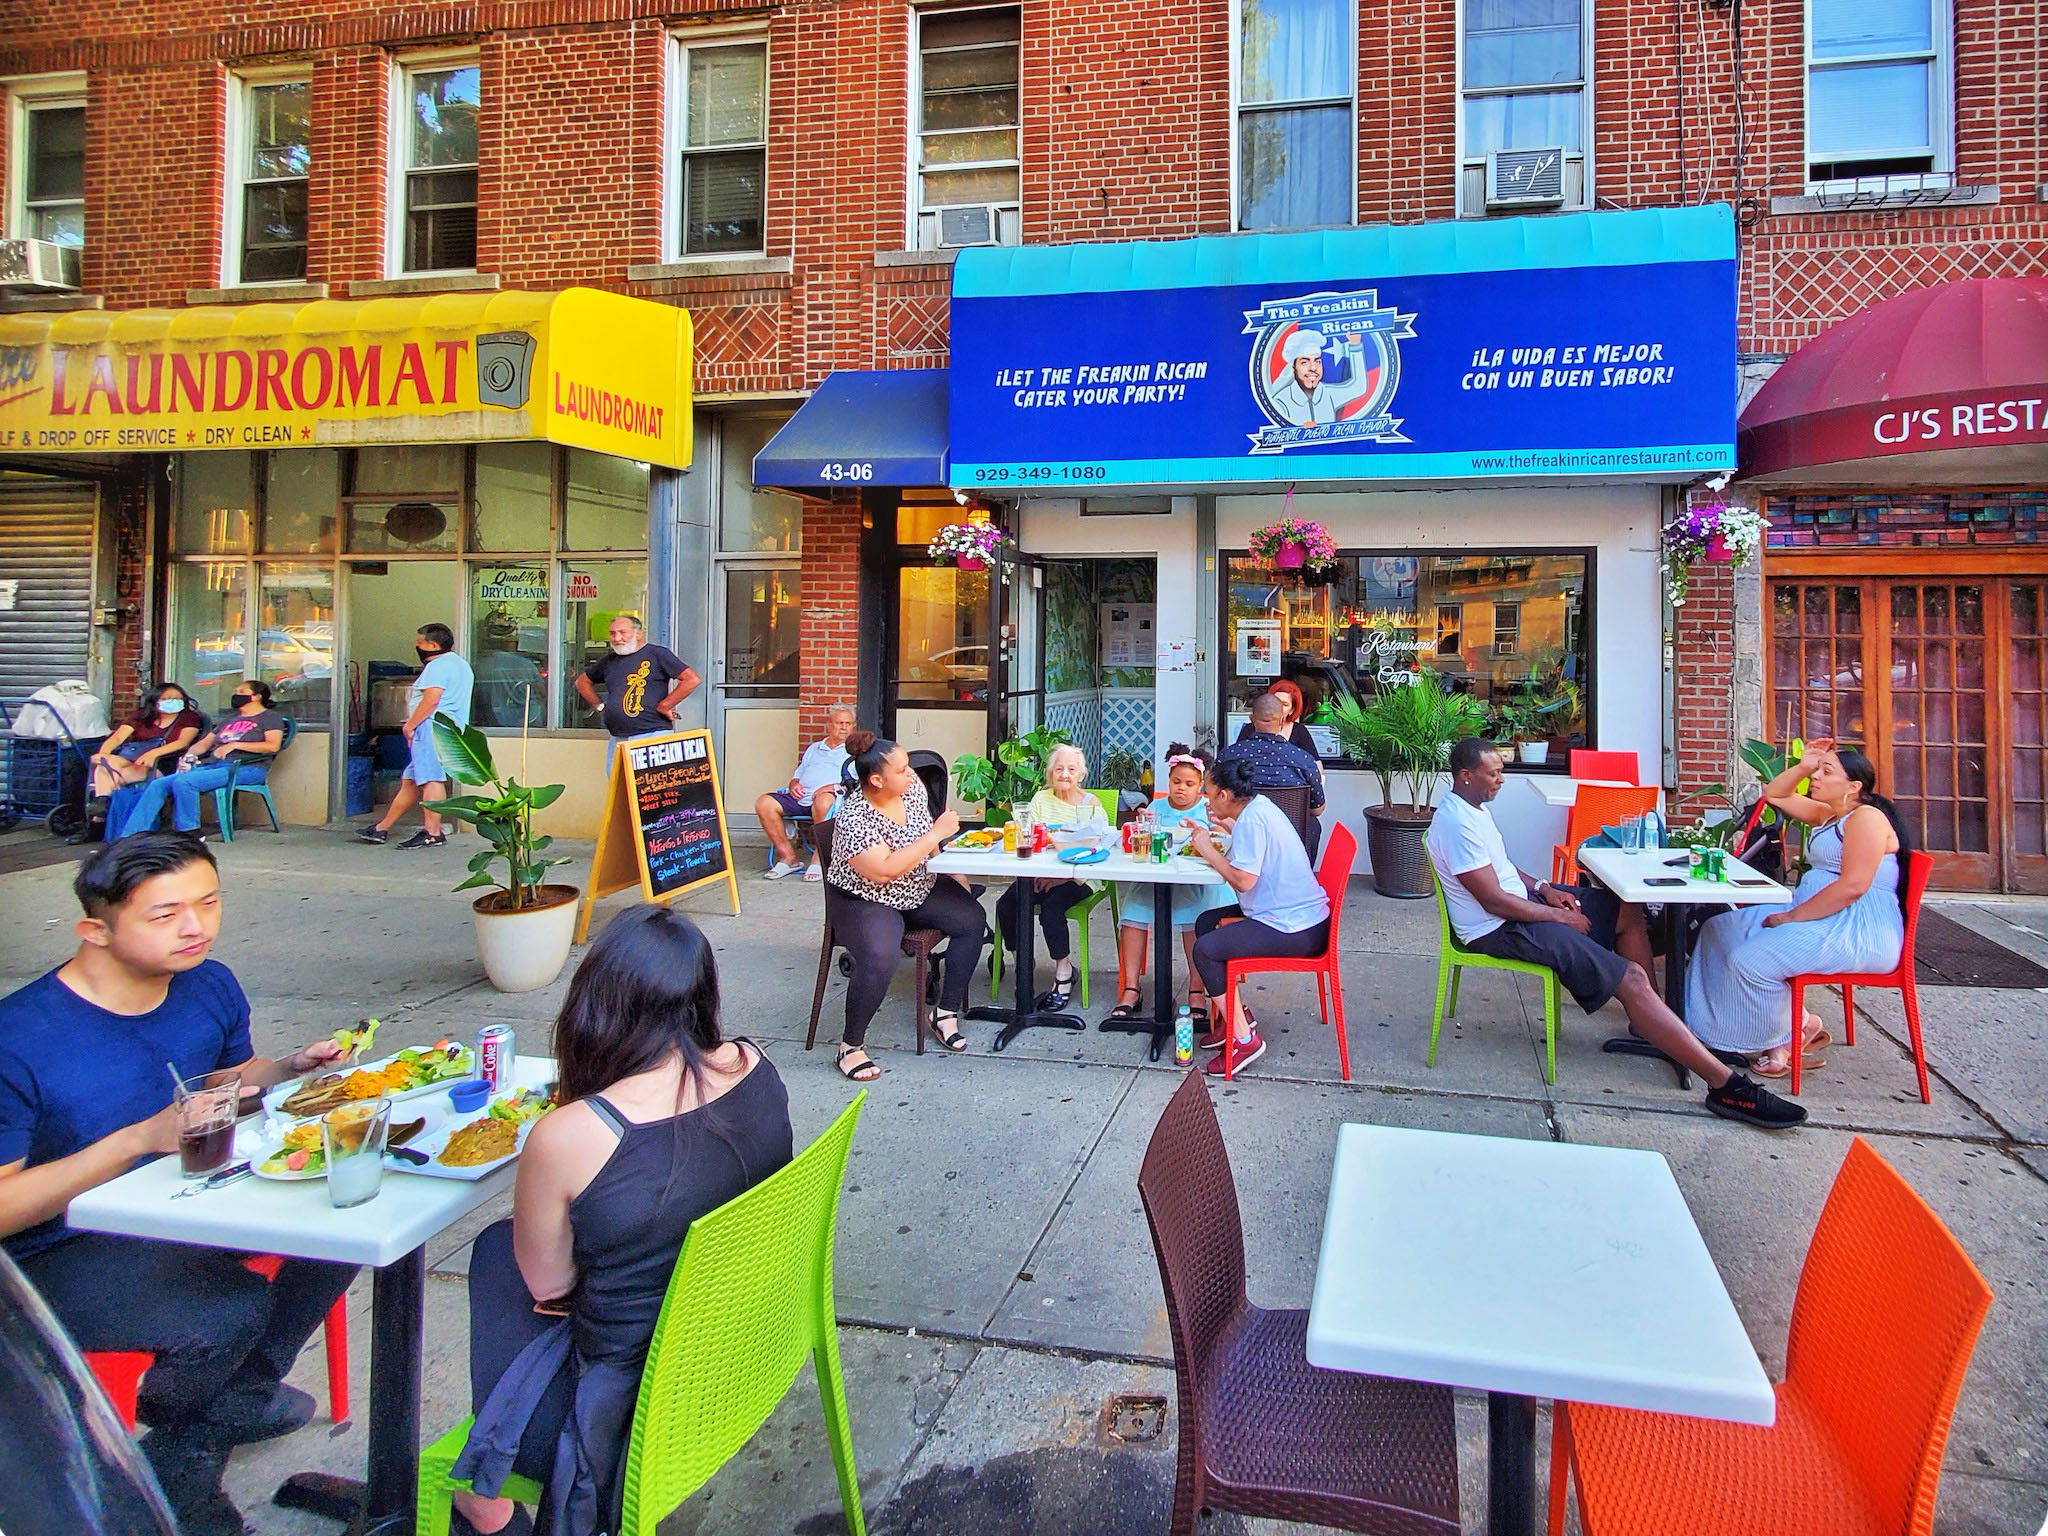 5 great outdoor dining spots in Astoria